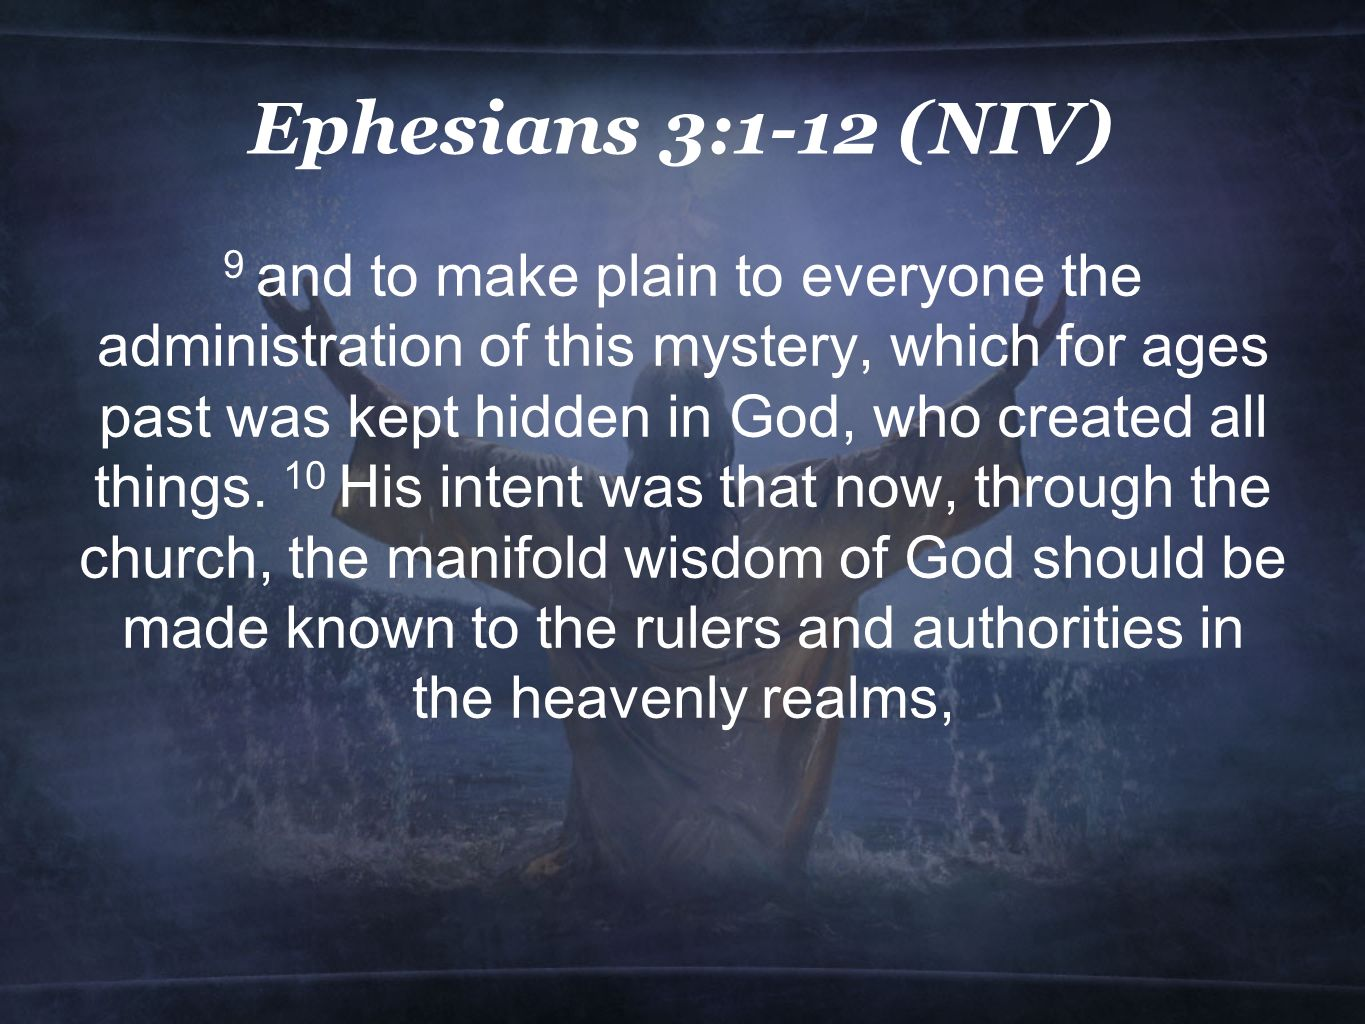 Ephesians 3:1-12 (NIV) 9 and to make plain to everyone the administration of this mystery, which for ages past was kept hidden in God, who created all things.